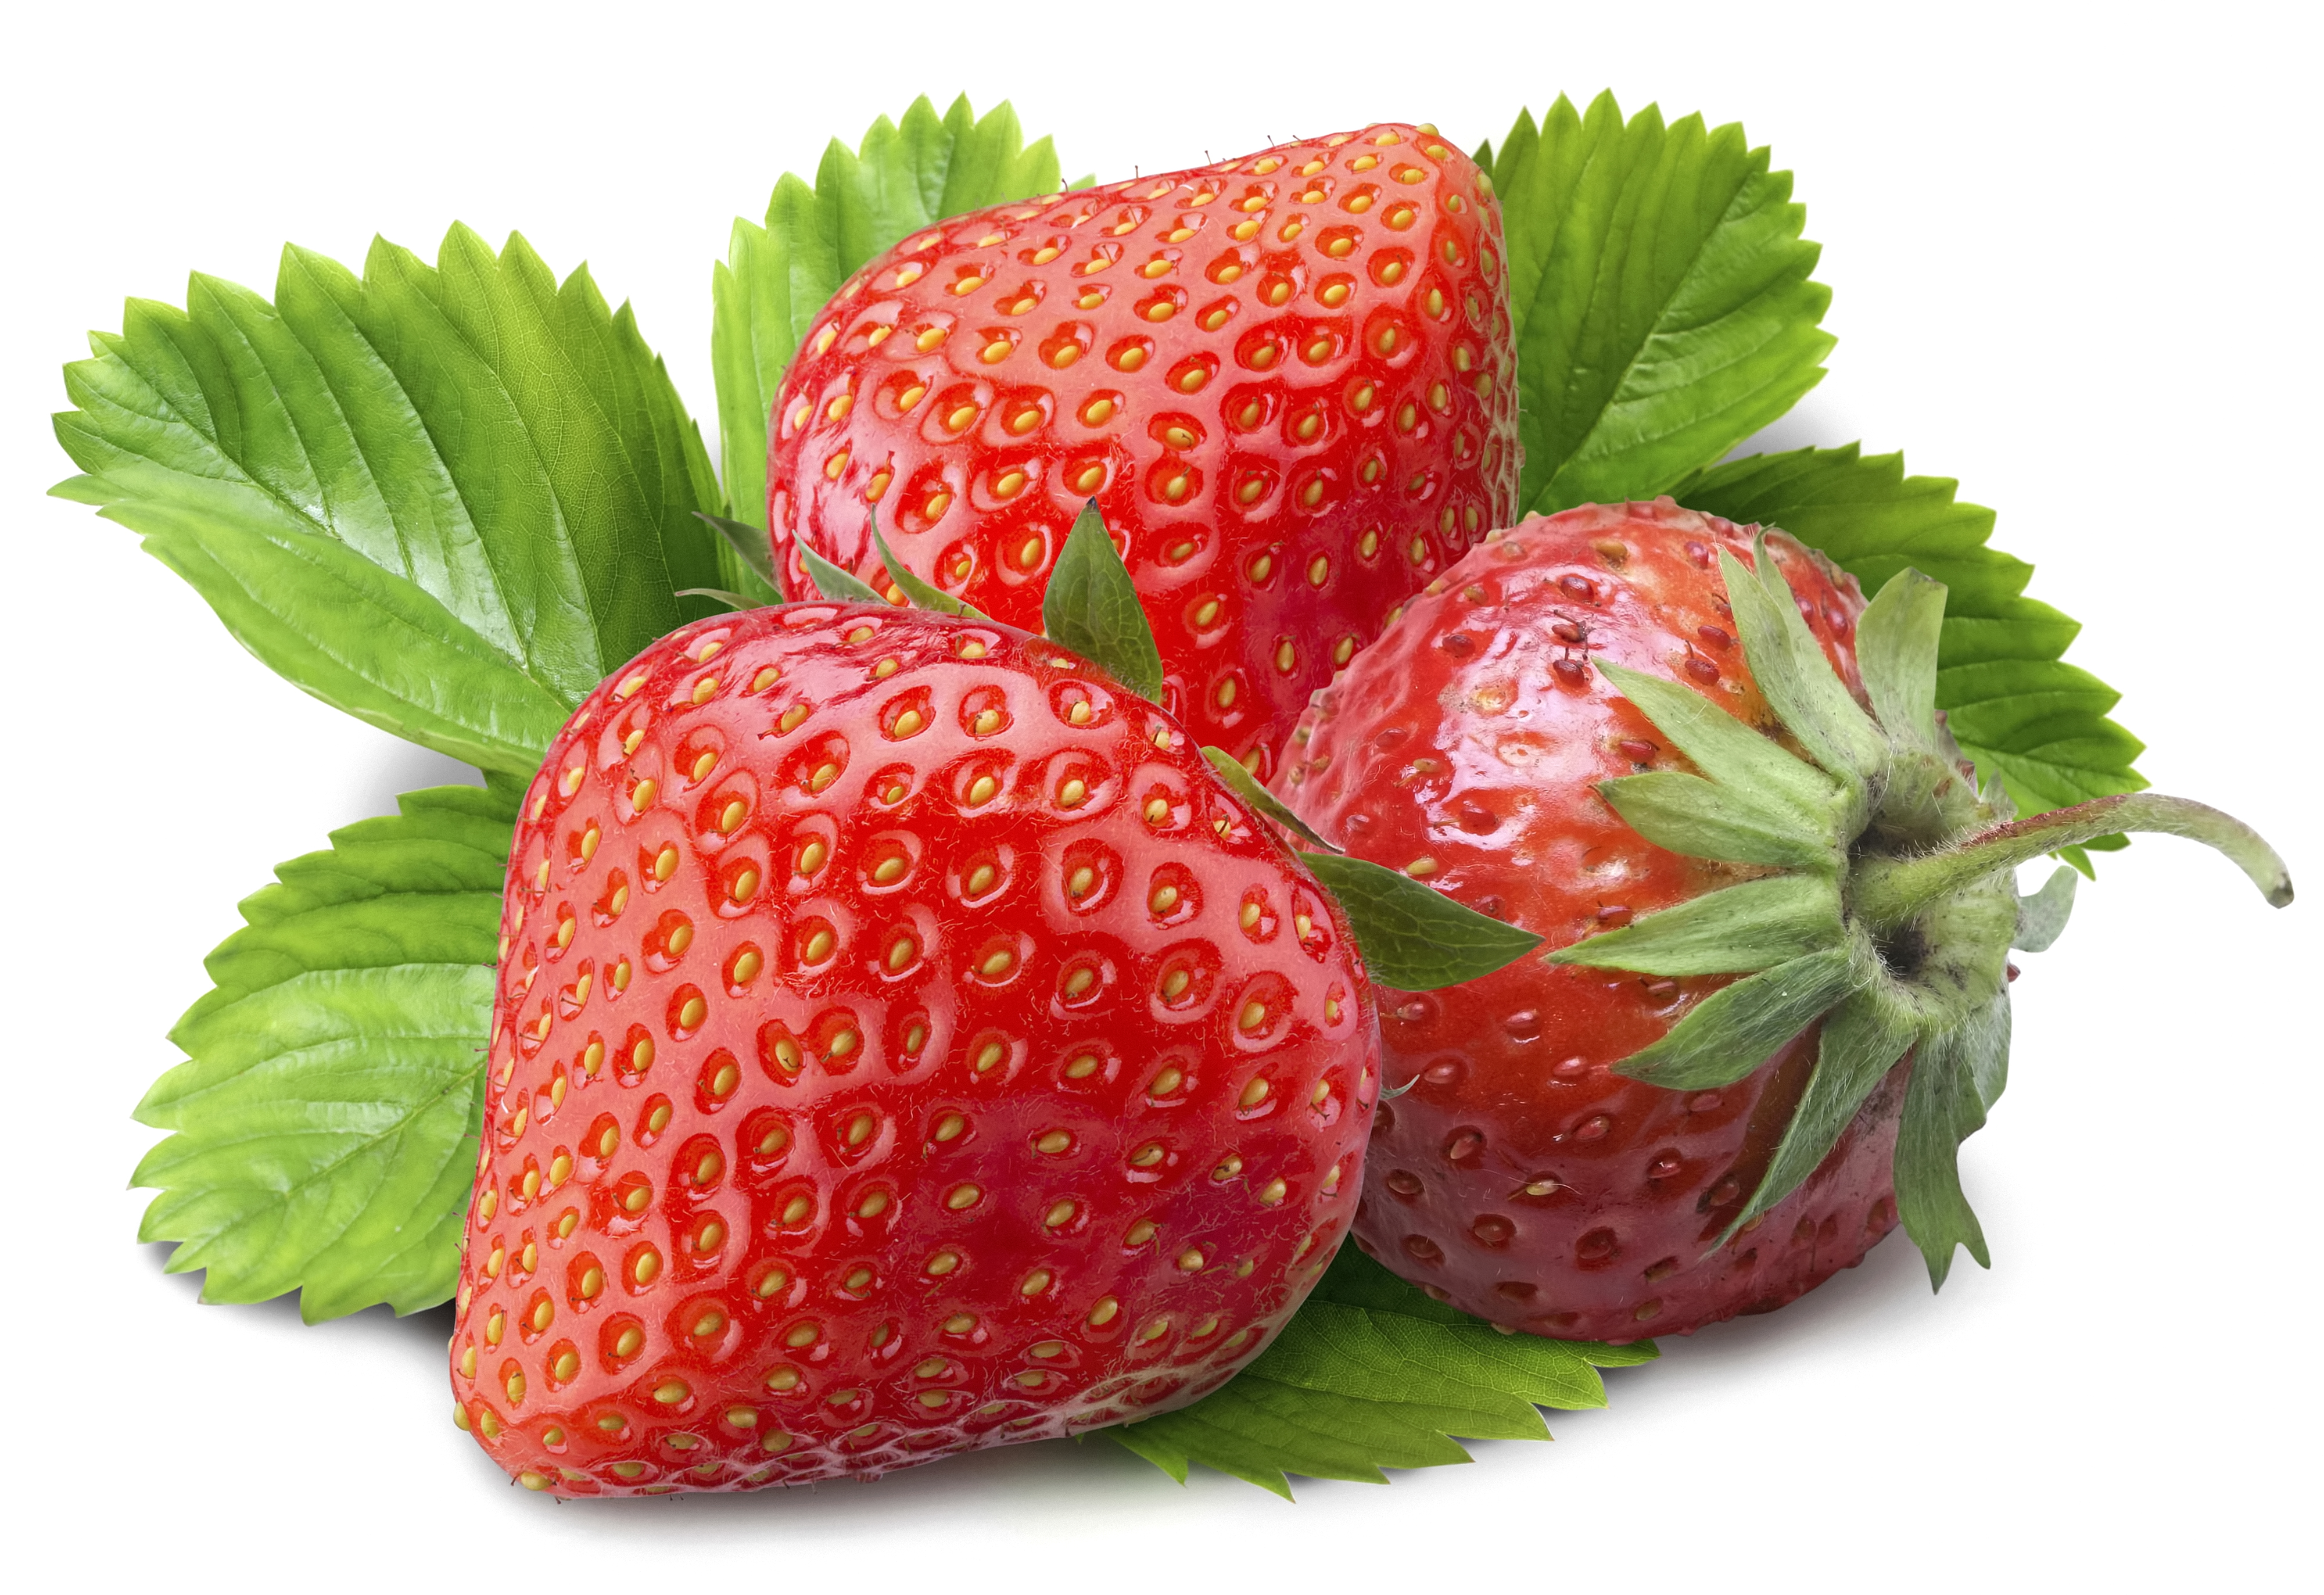 Strawberry Wallpapers High Quality | Download Free